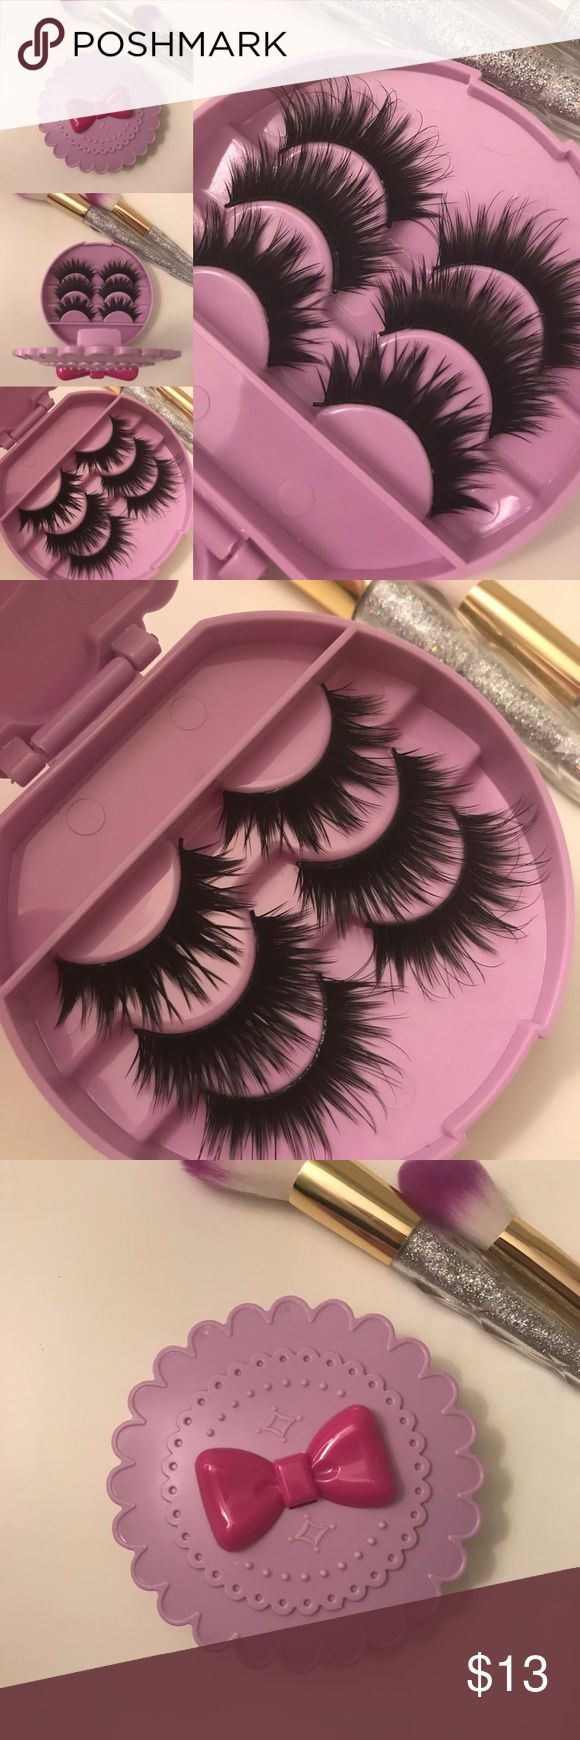 Wispy lashes + Eyelash Case # tags Iconic, mink, red cherry eyelashes, house of lashes, doll, kawaii, case, full, natural,  Koko, Ardell, wispies, Demi , makeup, kiss mascara, eyelashes, mink lashes, mink eyelashes,   Add on  applicator + $2 Add on glue +$3 Makeup False Eyelashes